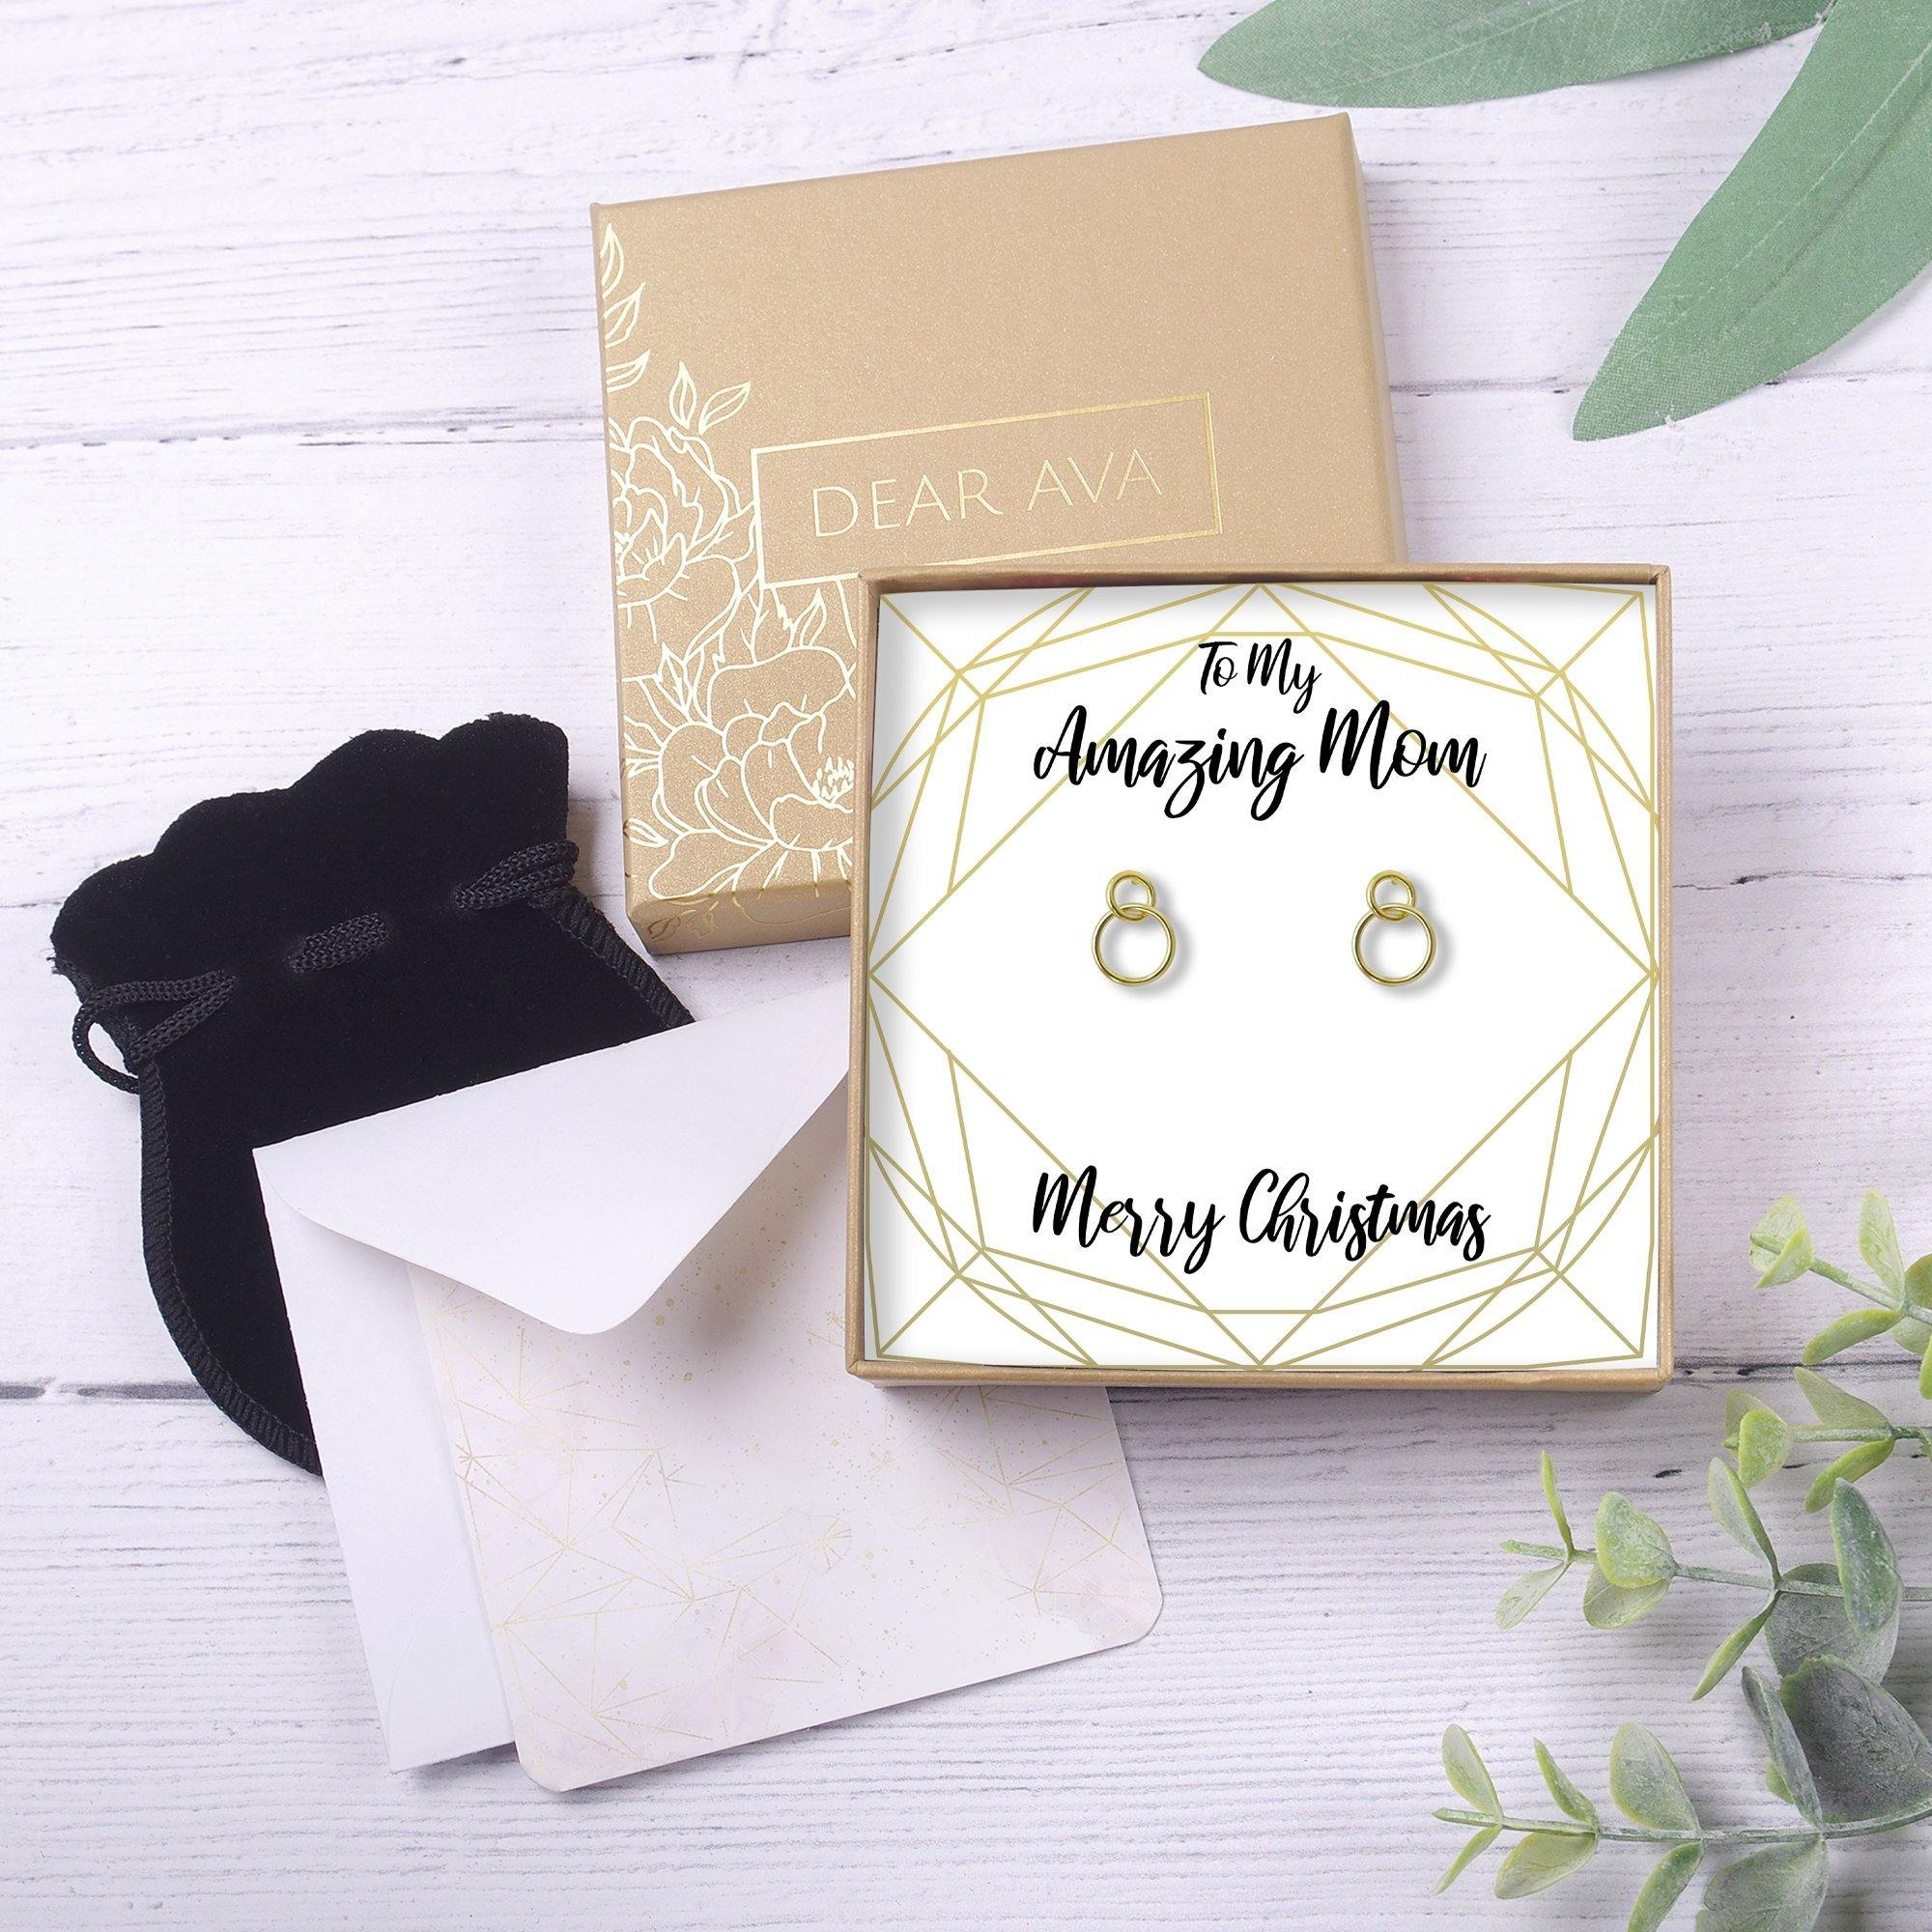 Christmas Gift For Mom Present Earrings Jewelry Xmas Gift Holiday Gift Gift Idea Mother Mom Gift Mother Daughter Gift 2 Interlocking Circles Dear Ava